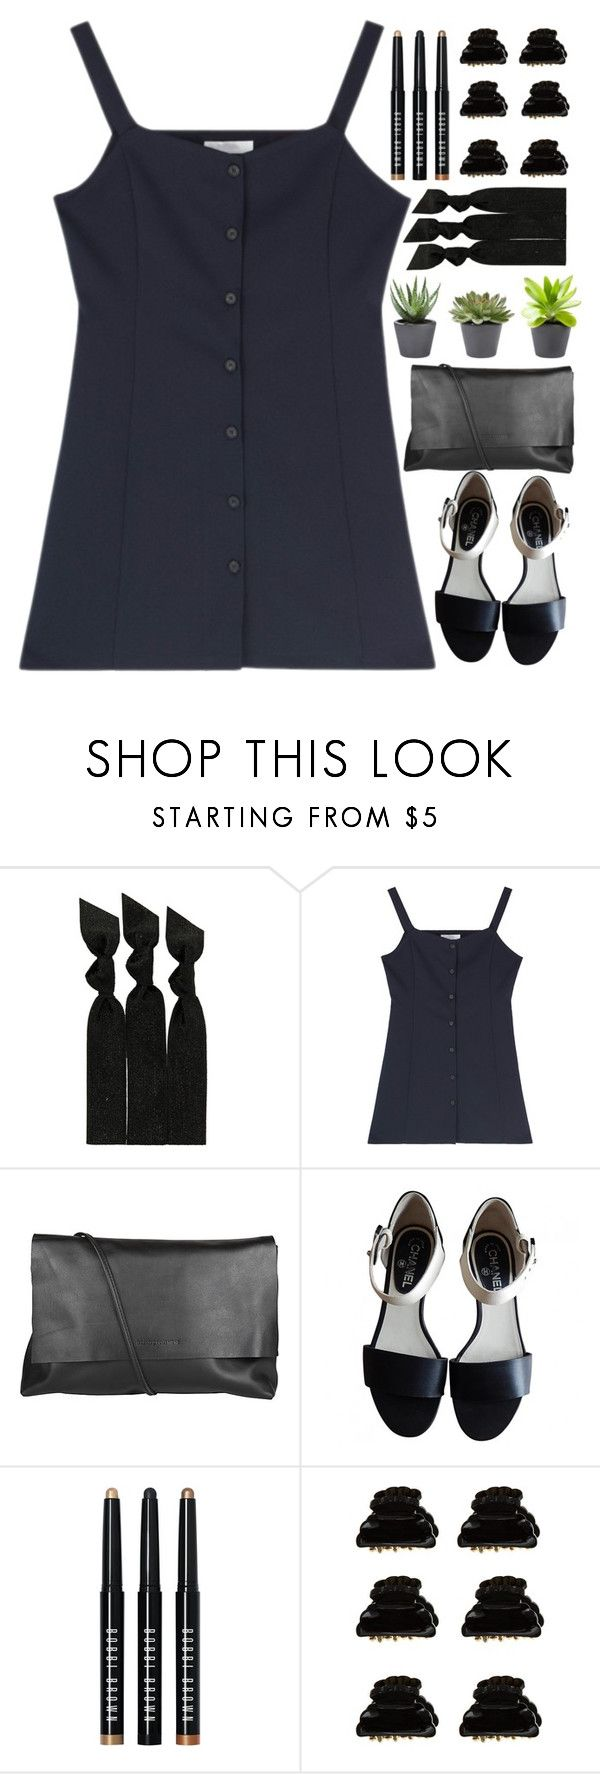 """""""We're setting fire to our insides for fun"""" by annaclaraalvez ❤ liked on Polyvore featuring Emi-Jay, Arlington Milne, Chanel and Bobbi Brown Cosmetics"""